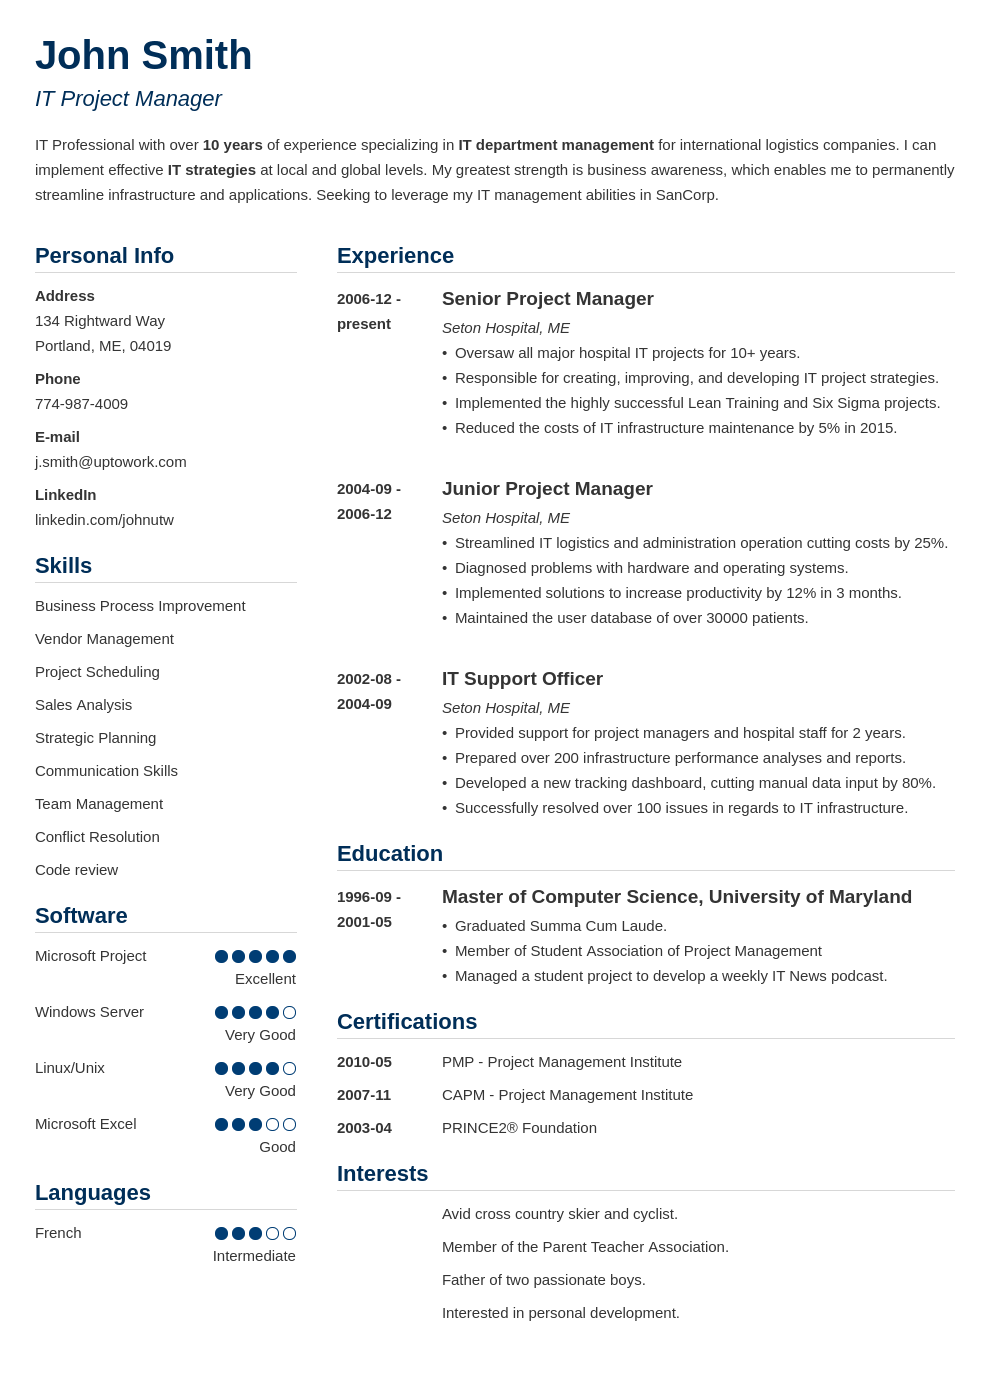 Resume Examples For Free Good Resume Examples For Jobs 99 Free Sample Resumes Guides